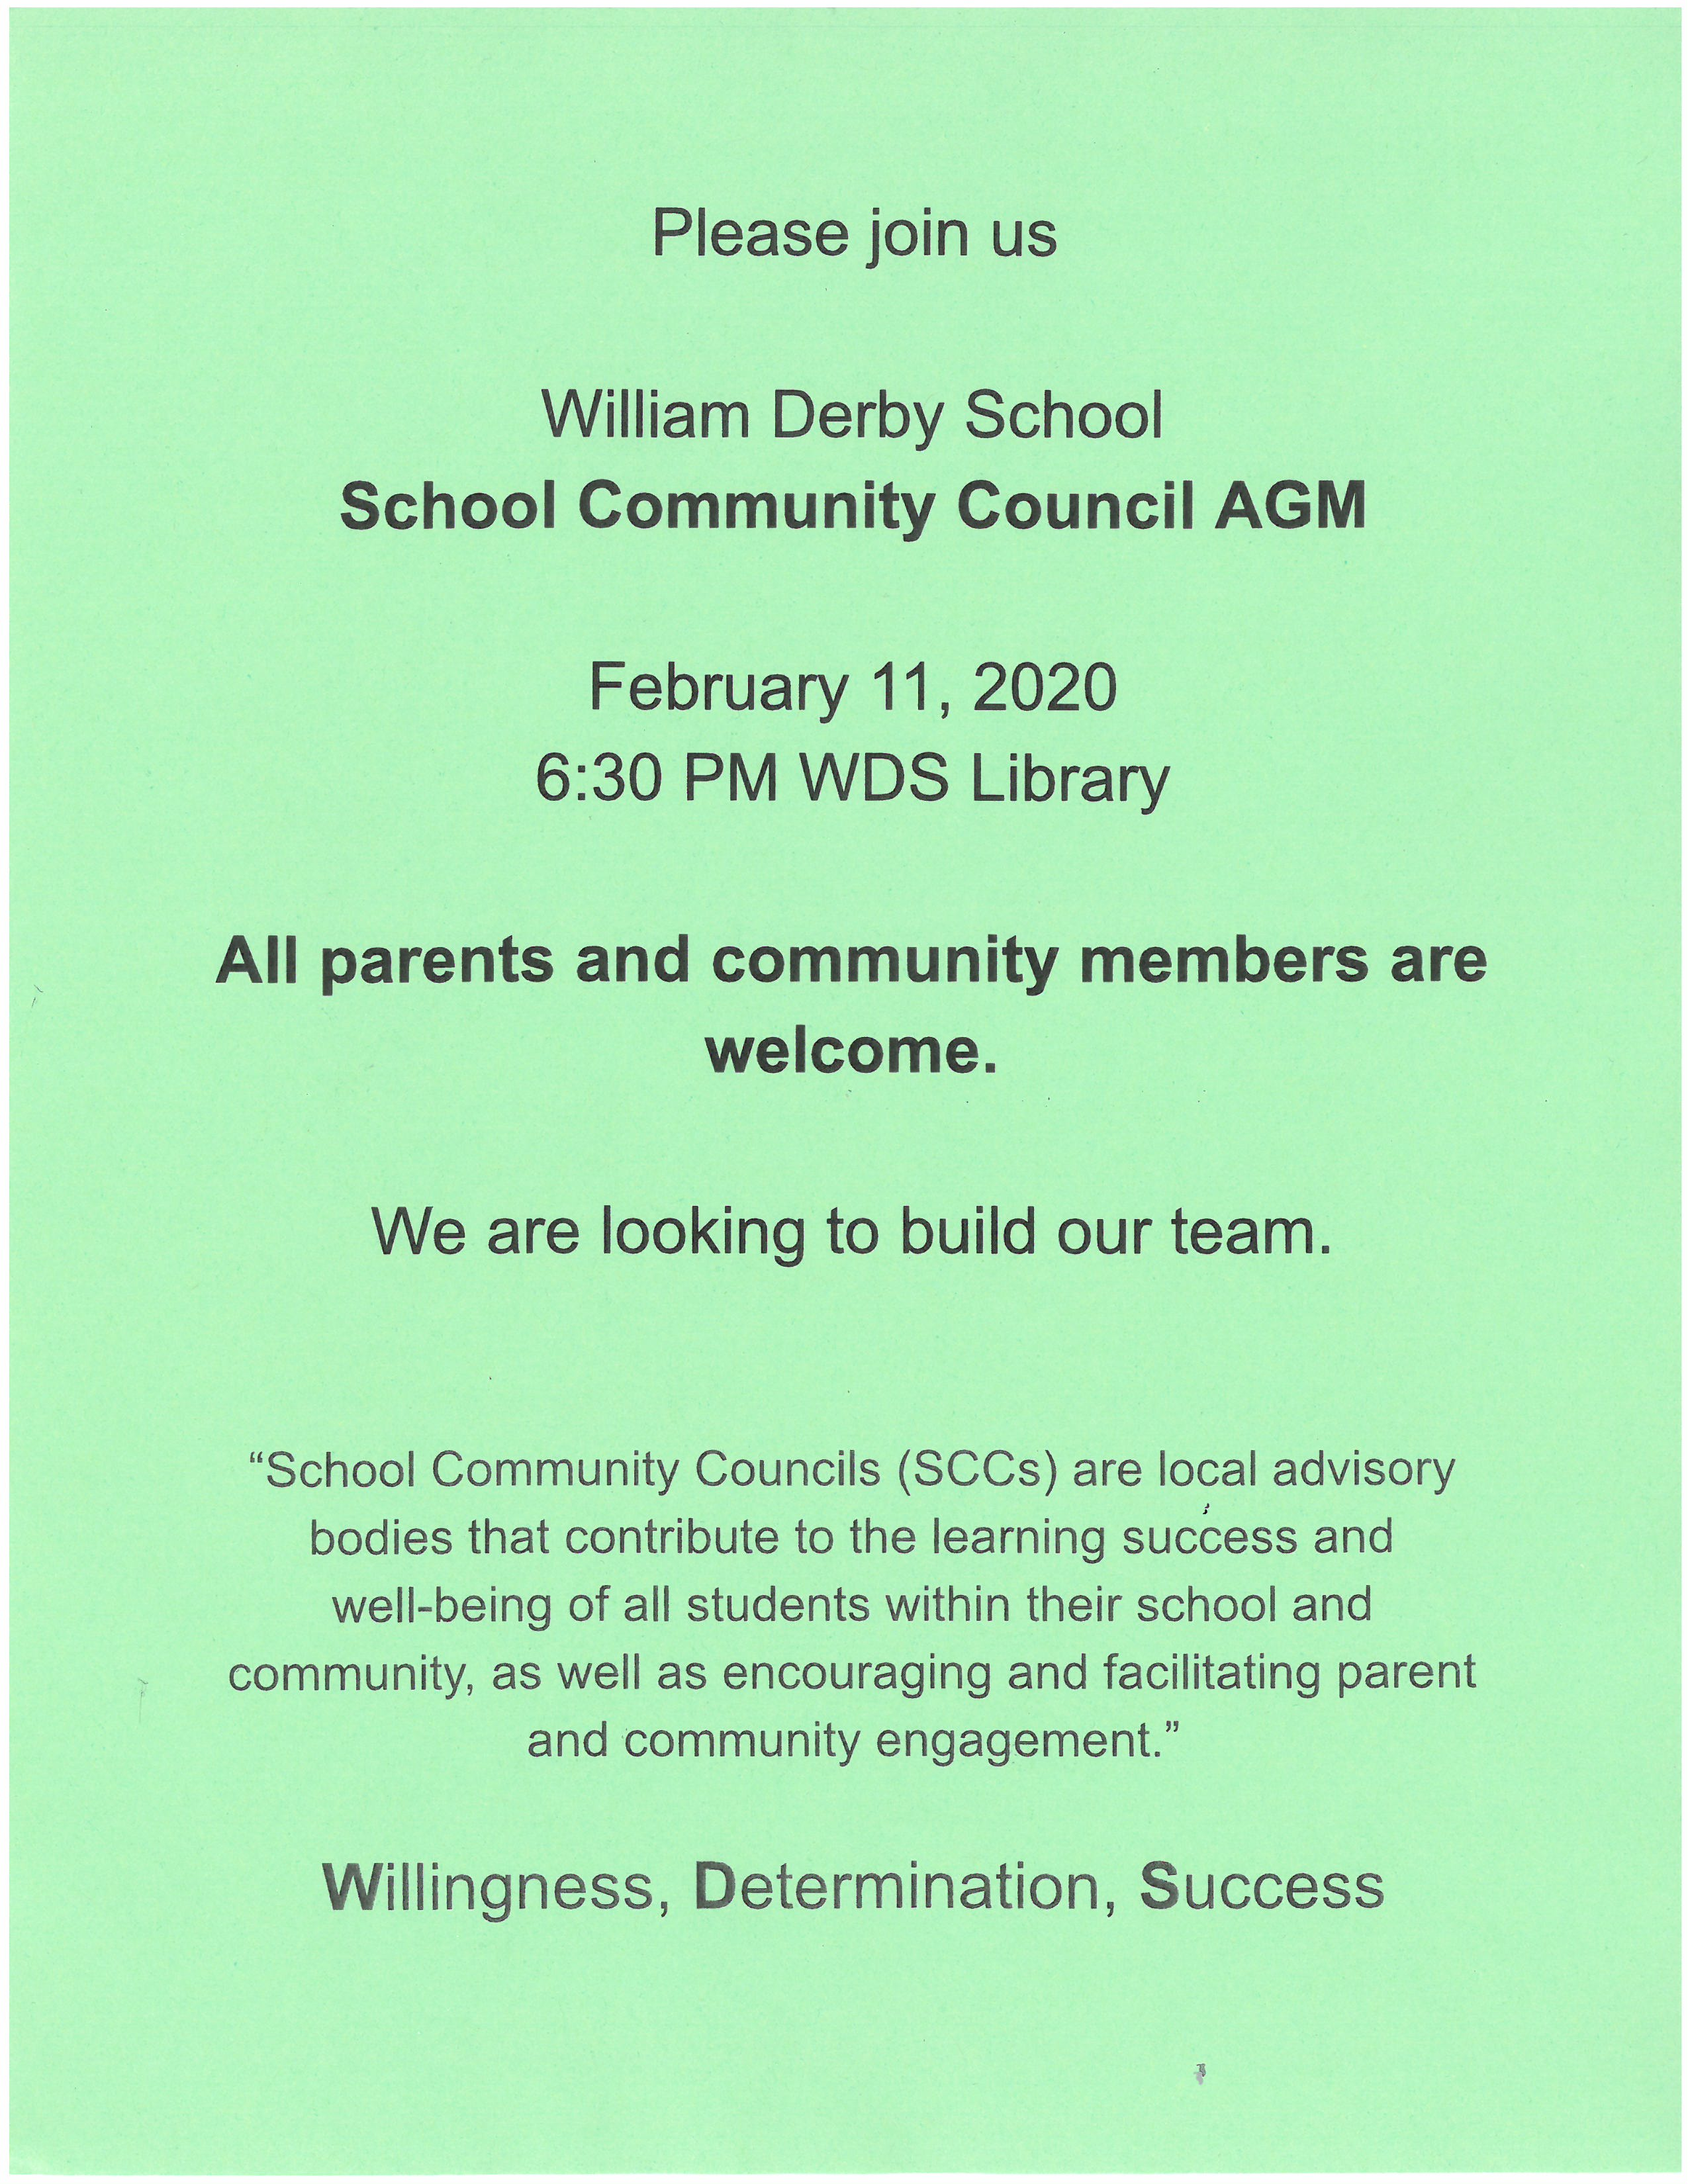 Come and be part of the WDS family!